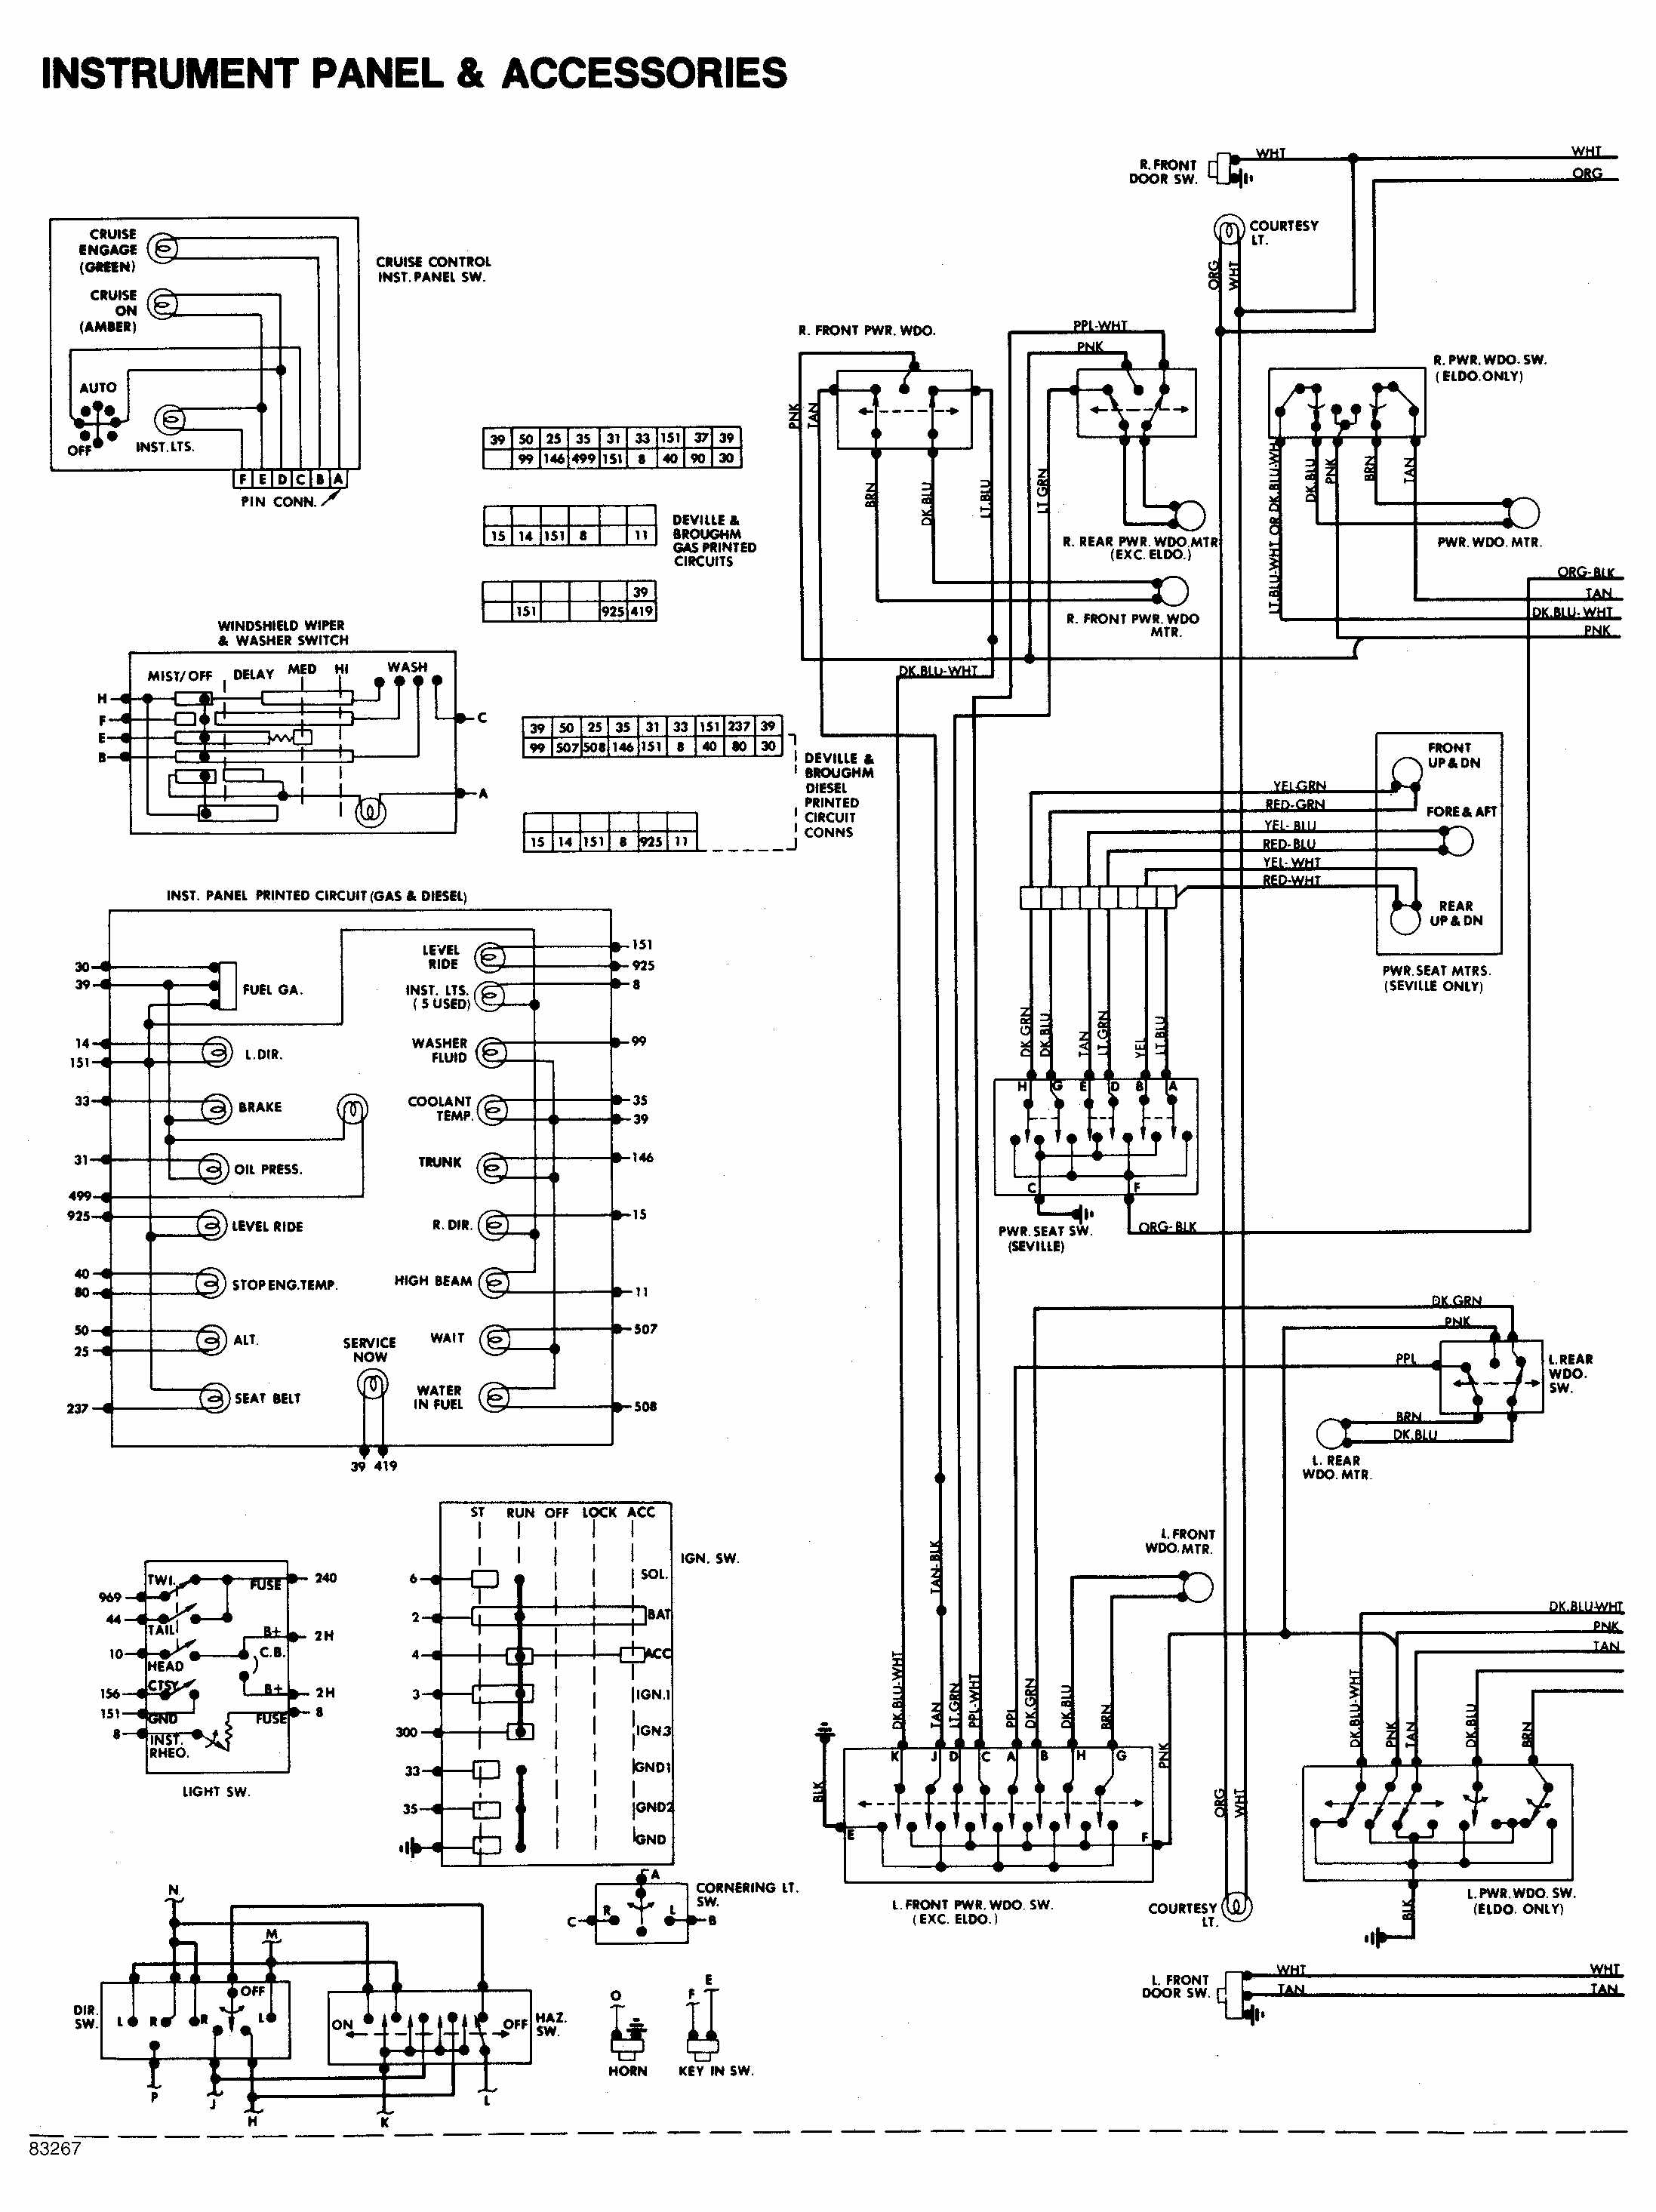 99 cadillac deville wiring diagram 3 1 growthstagetech co \u2022